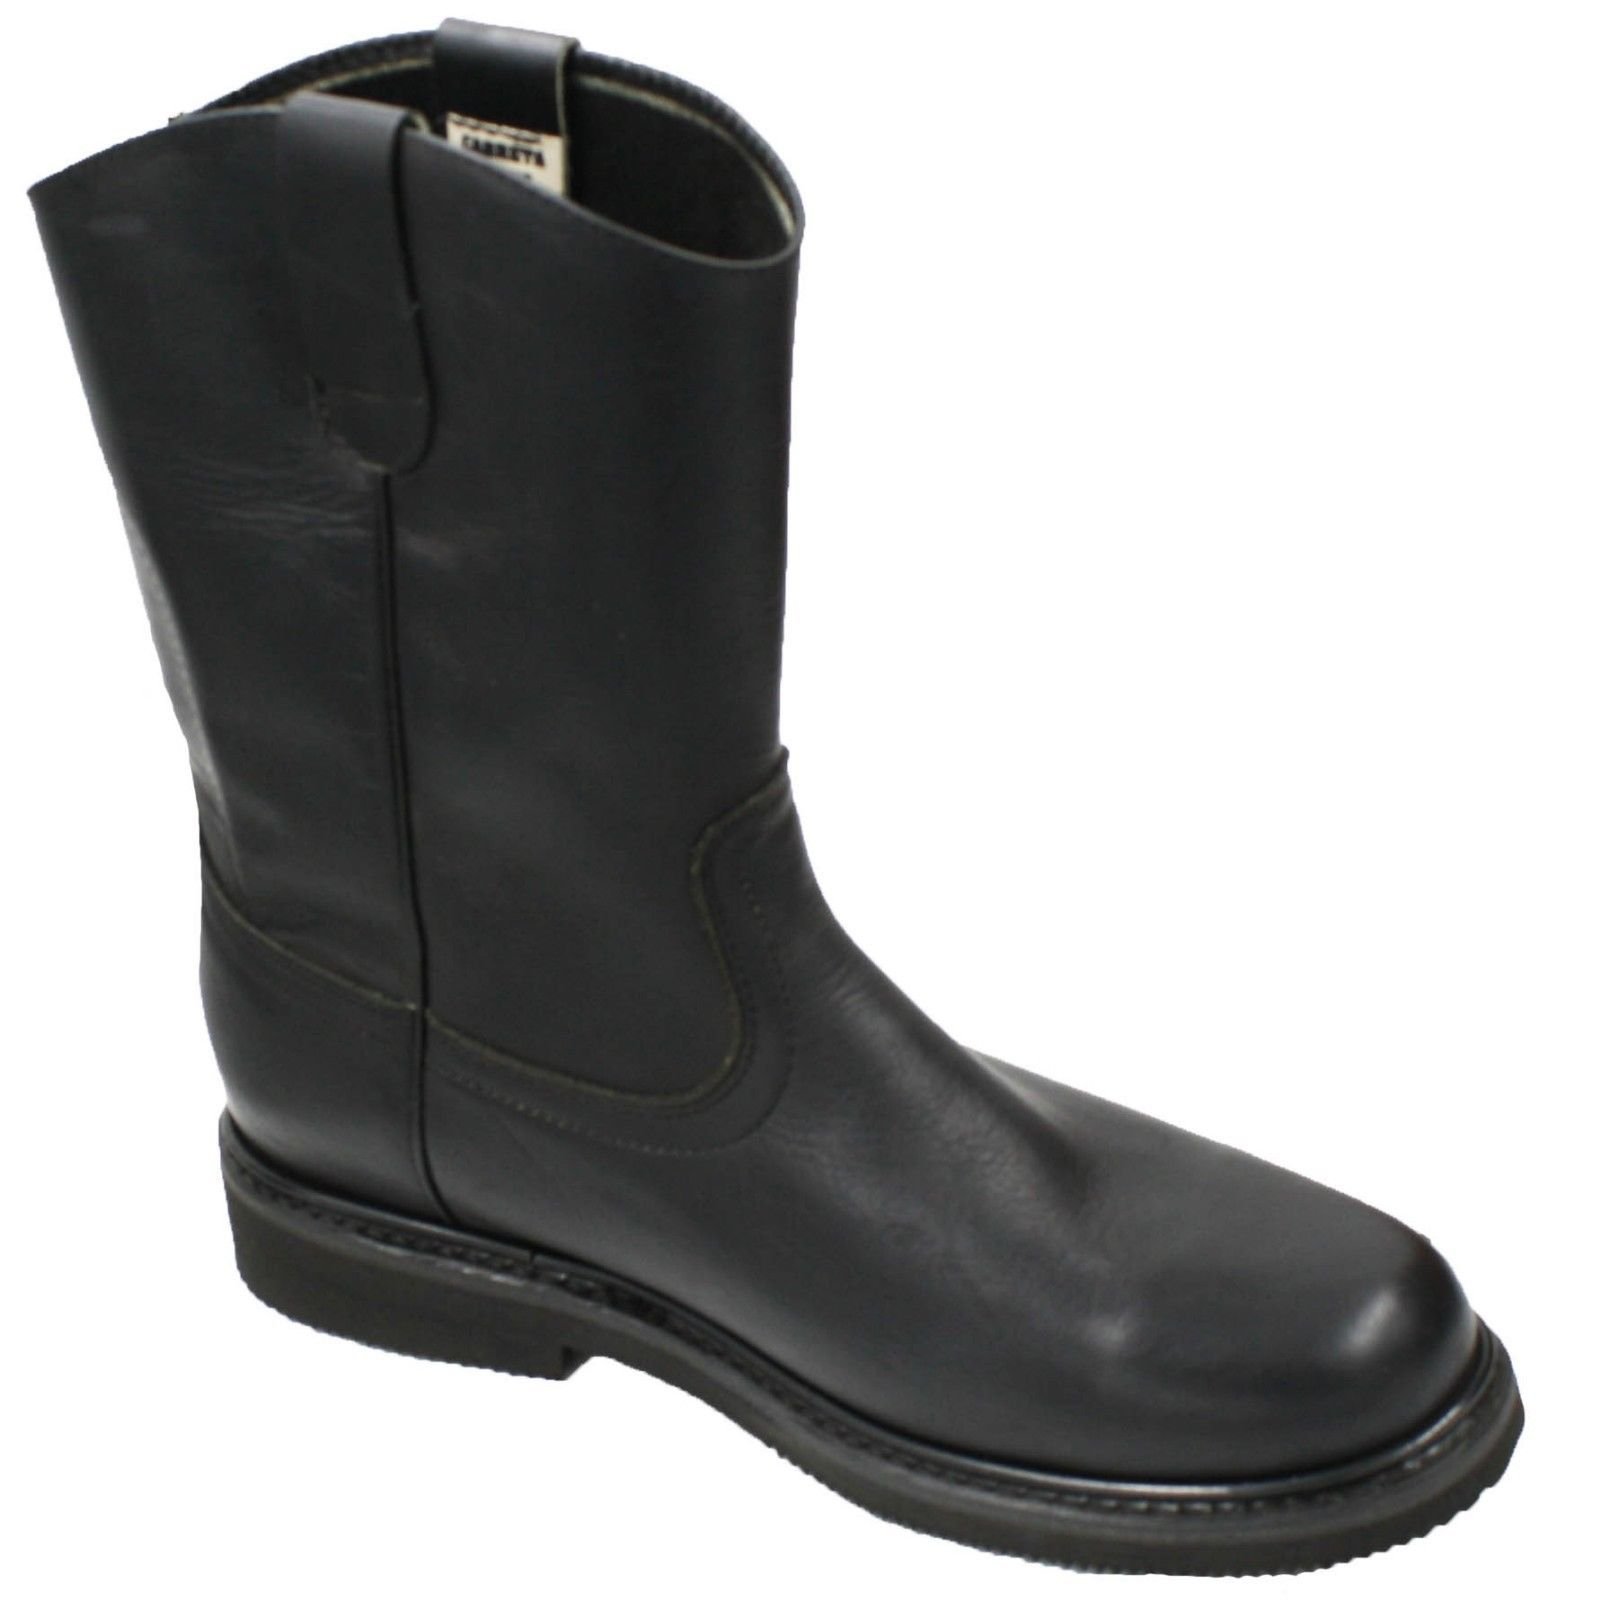 Dona Michi Men's Work Boots Pull On Leather Oil Water Slip Resistant Black 8.5